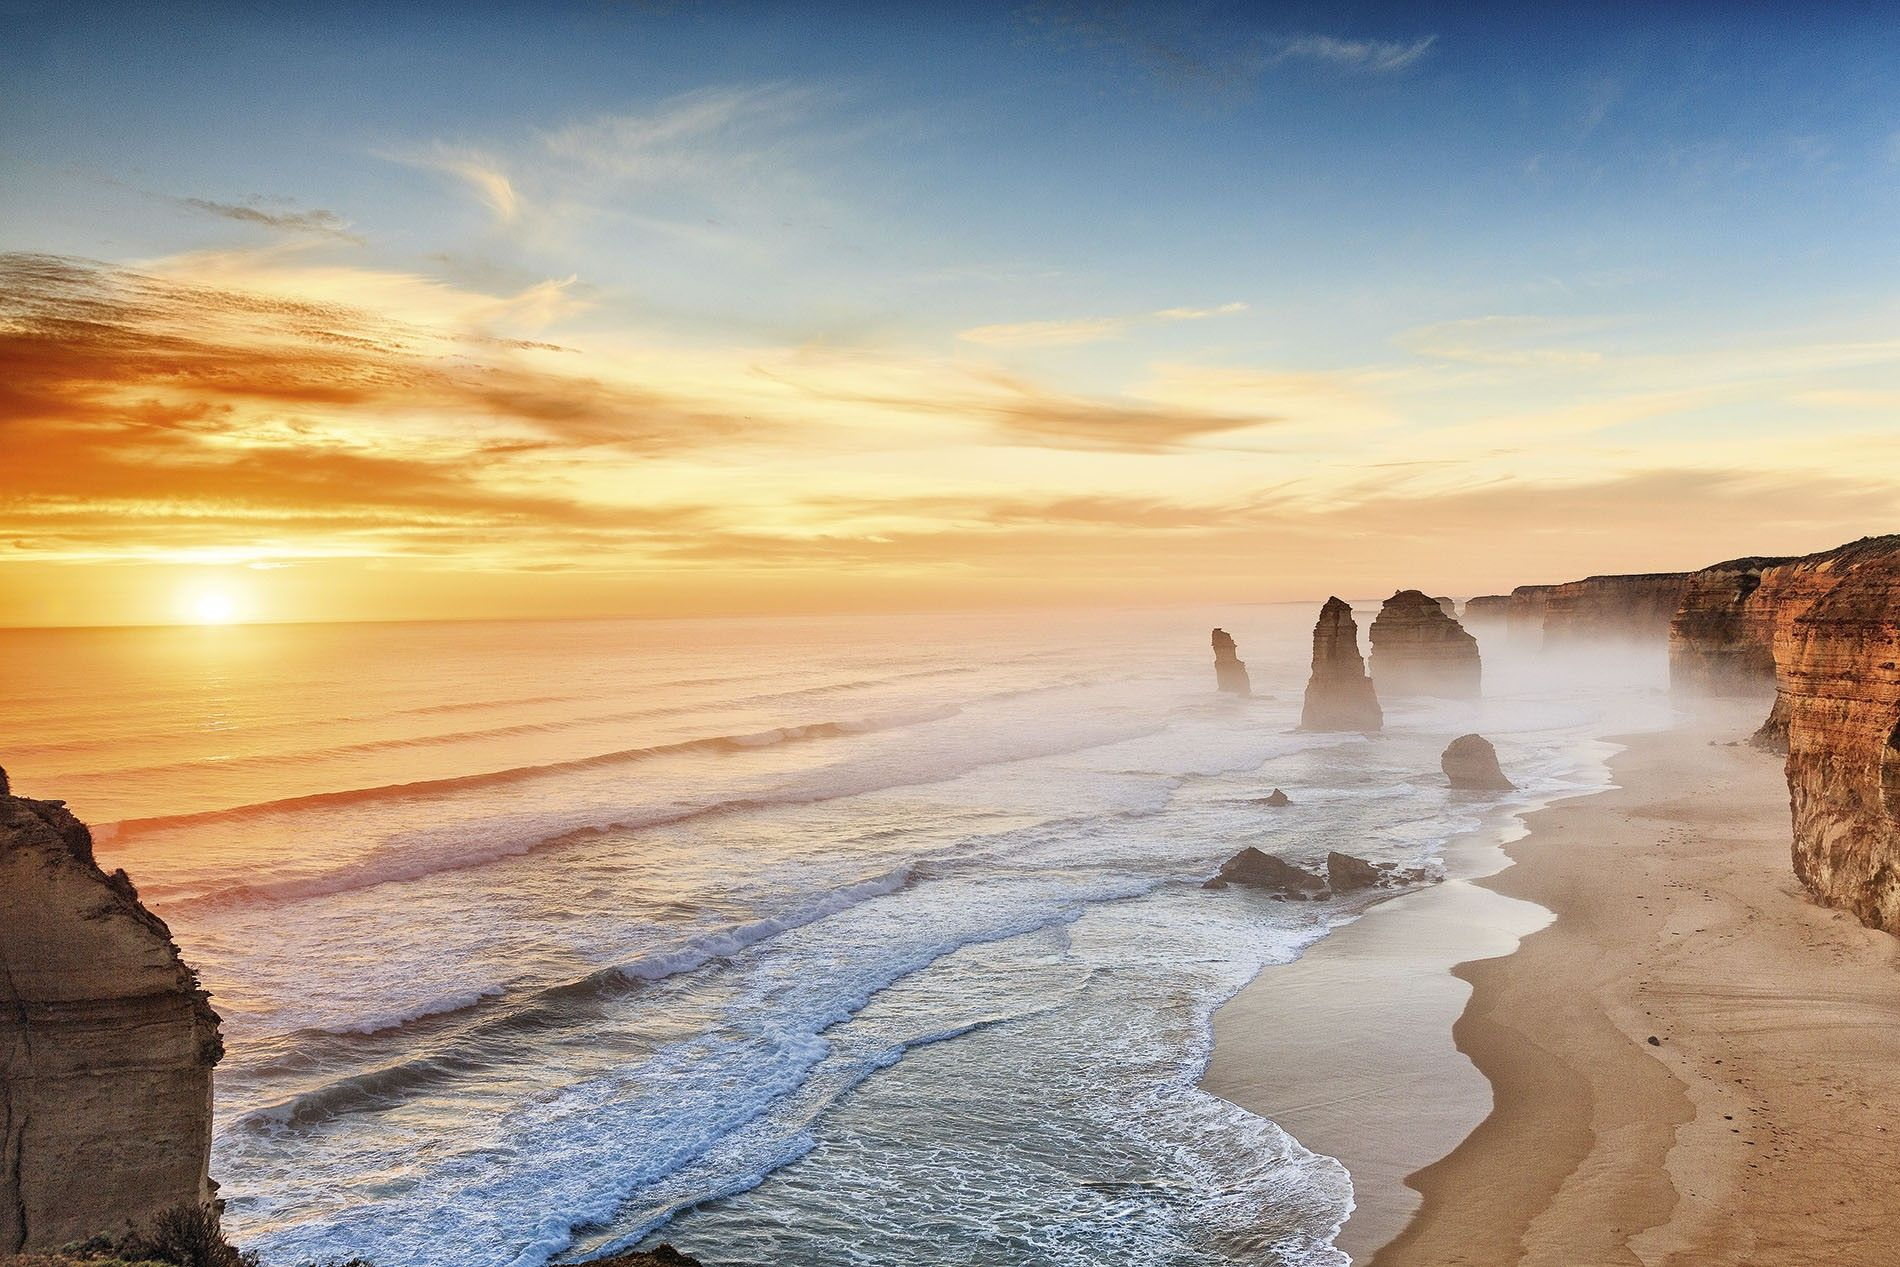 Sunset at the Twelve Apostles on the Great Ocean Road, Australia.